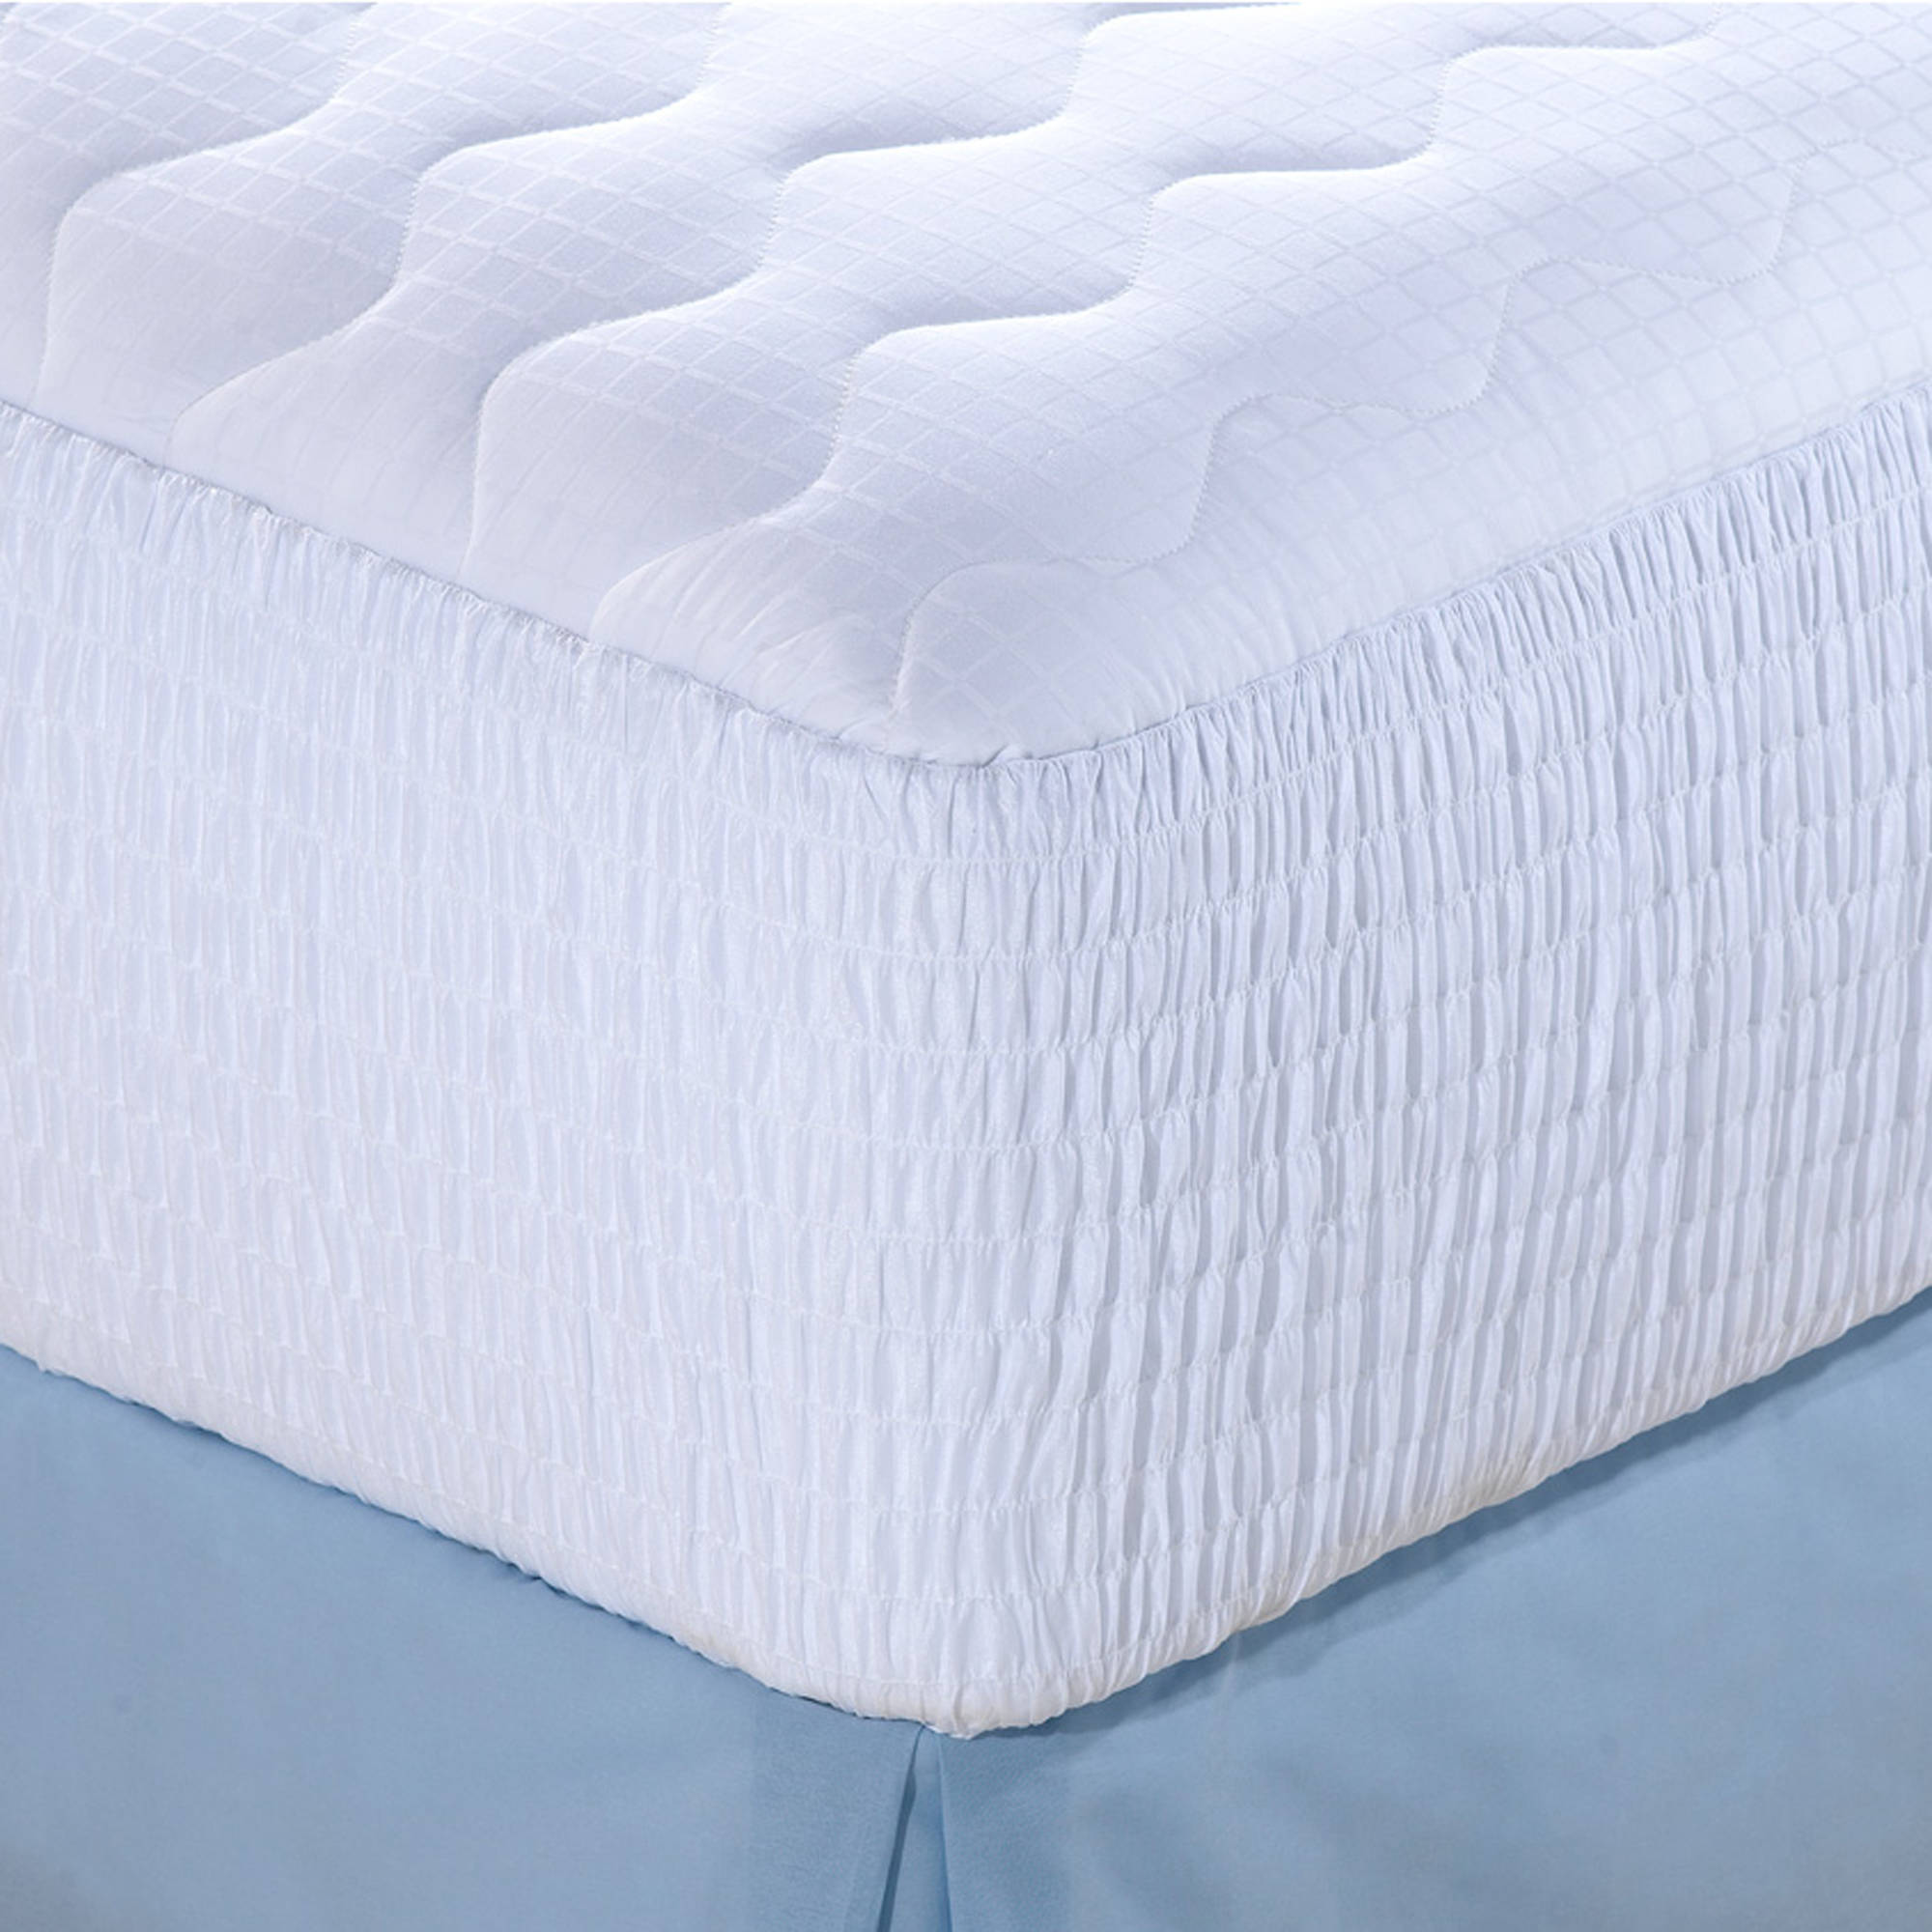 Click here to buy Beautyrest Luxury Cotton Dobby Check Mattress Pad in Multiple Sizes by Hollander Sleep Products.